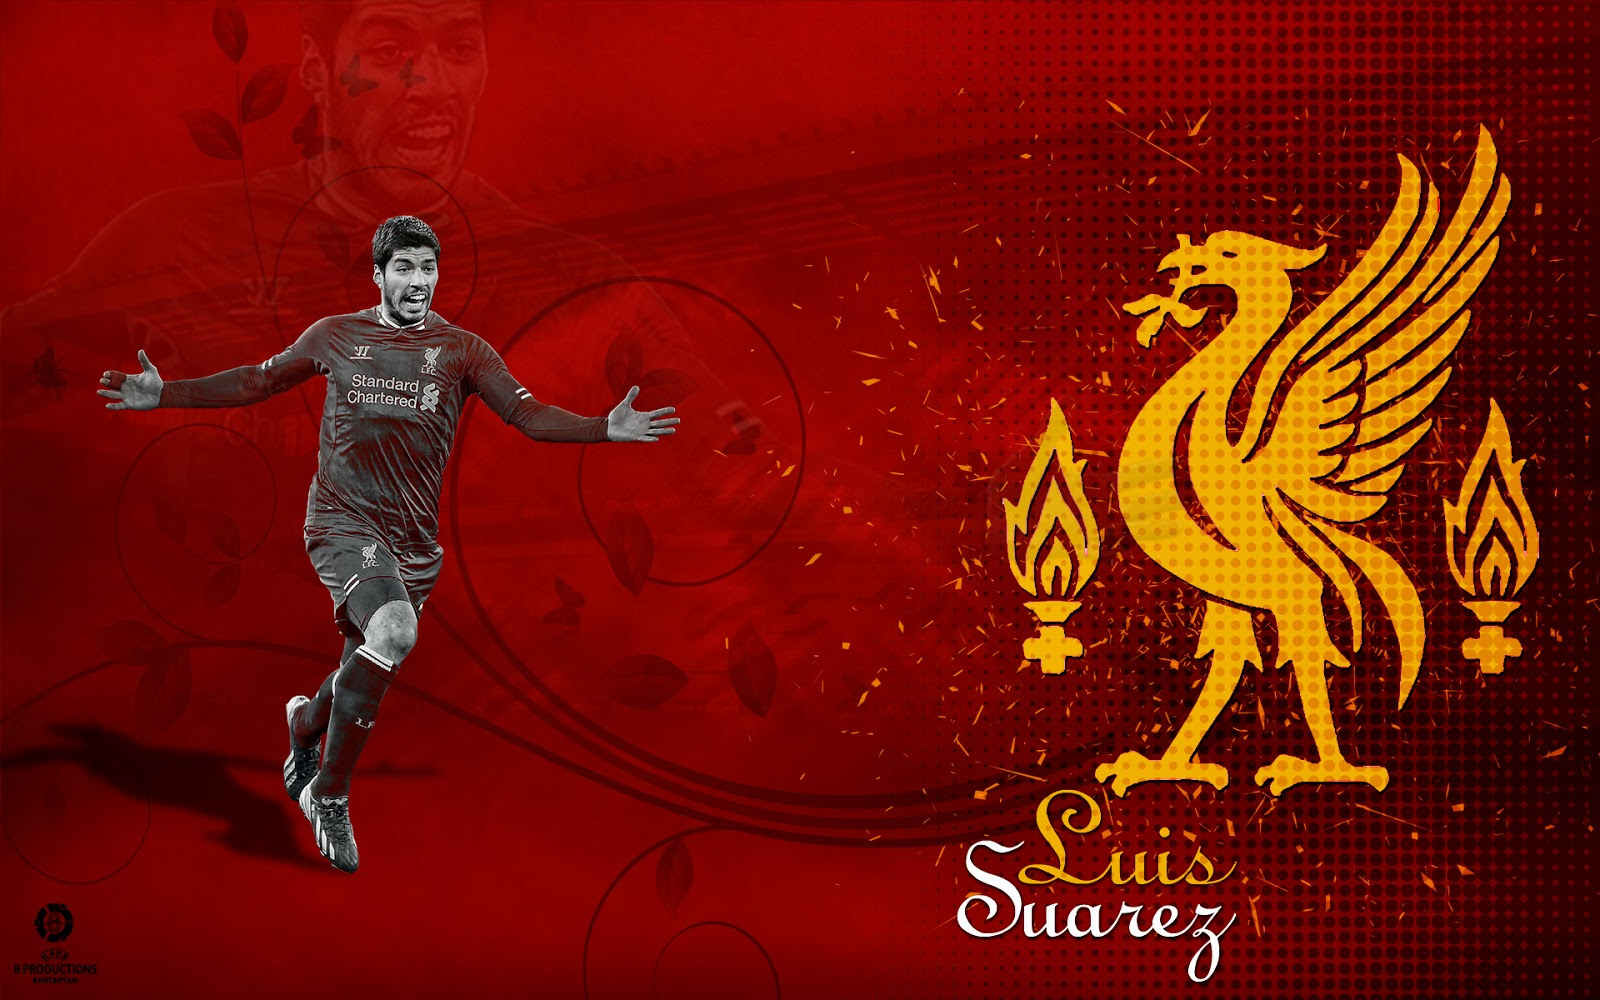 8 productions luis suarez liverpool wallpaper 2013 14 - Suarez liverpool wallpaper ...